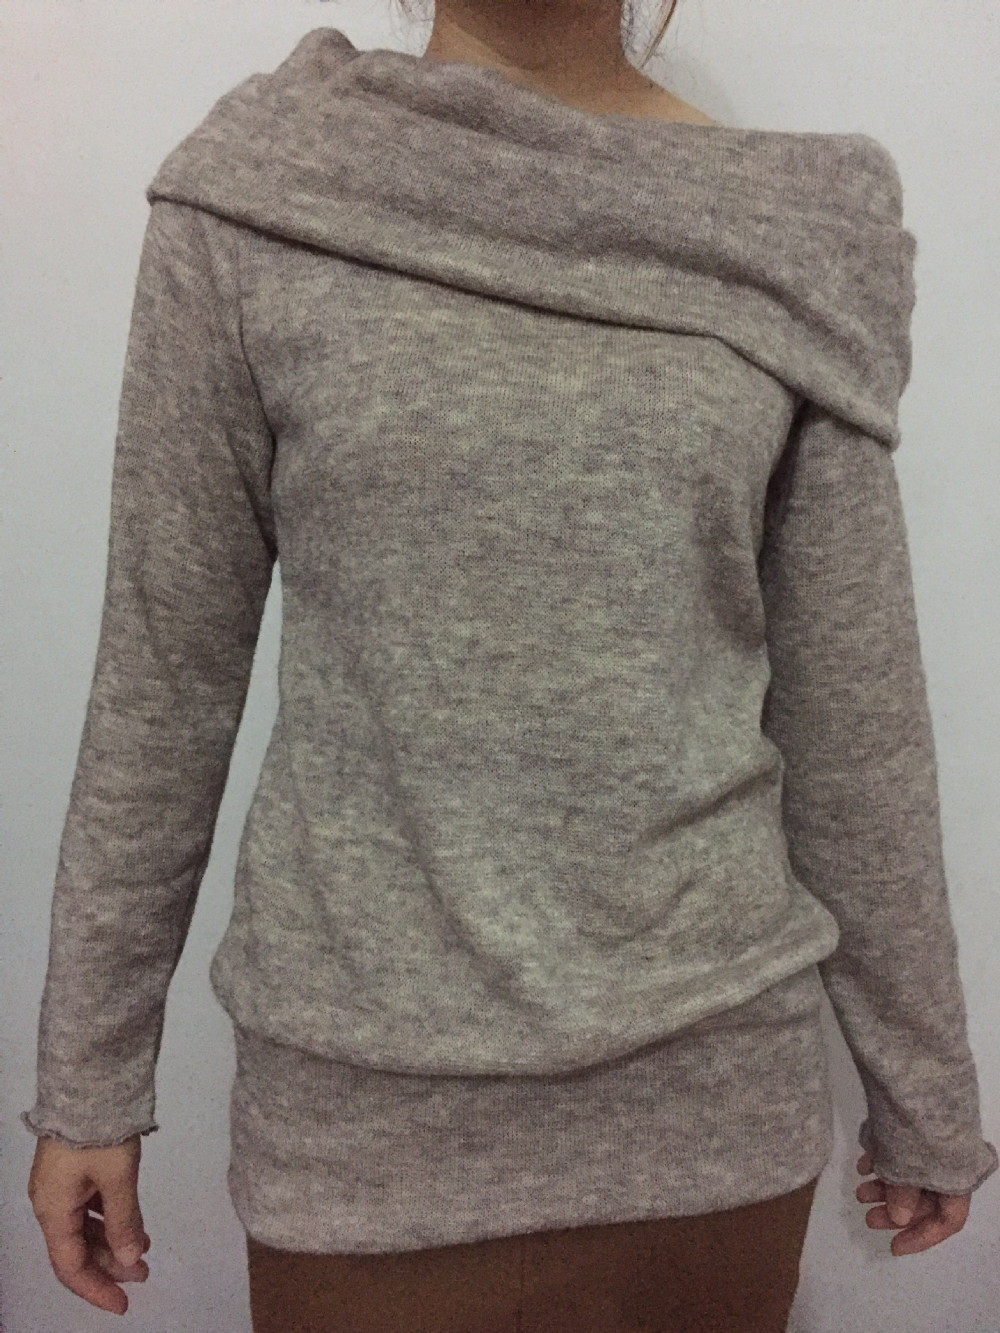 HTB1ZGbfKVXXXXXDXVXXq6xXFXXXP - Women Long Sleeve Sweater Pullovers Burderry PTC 74